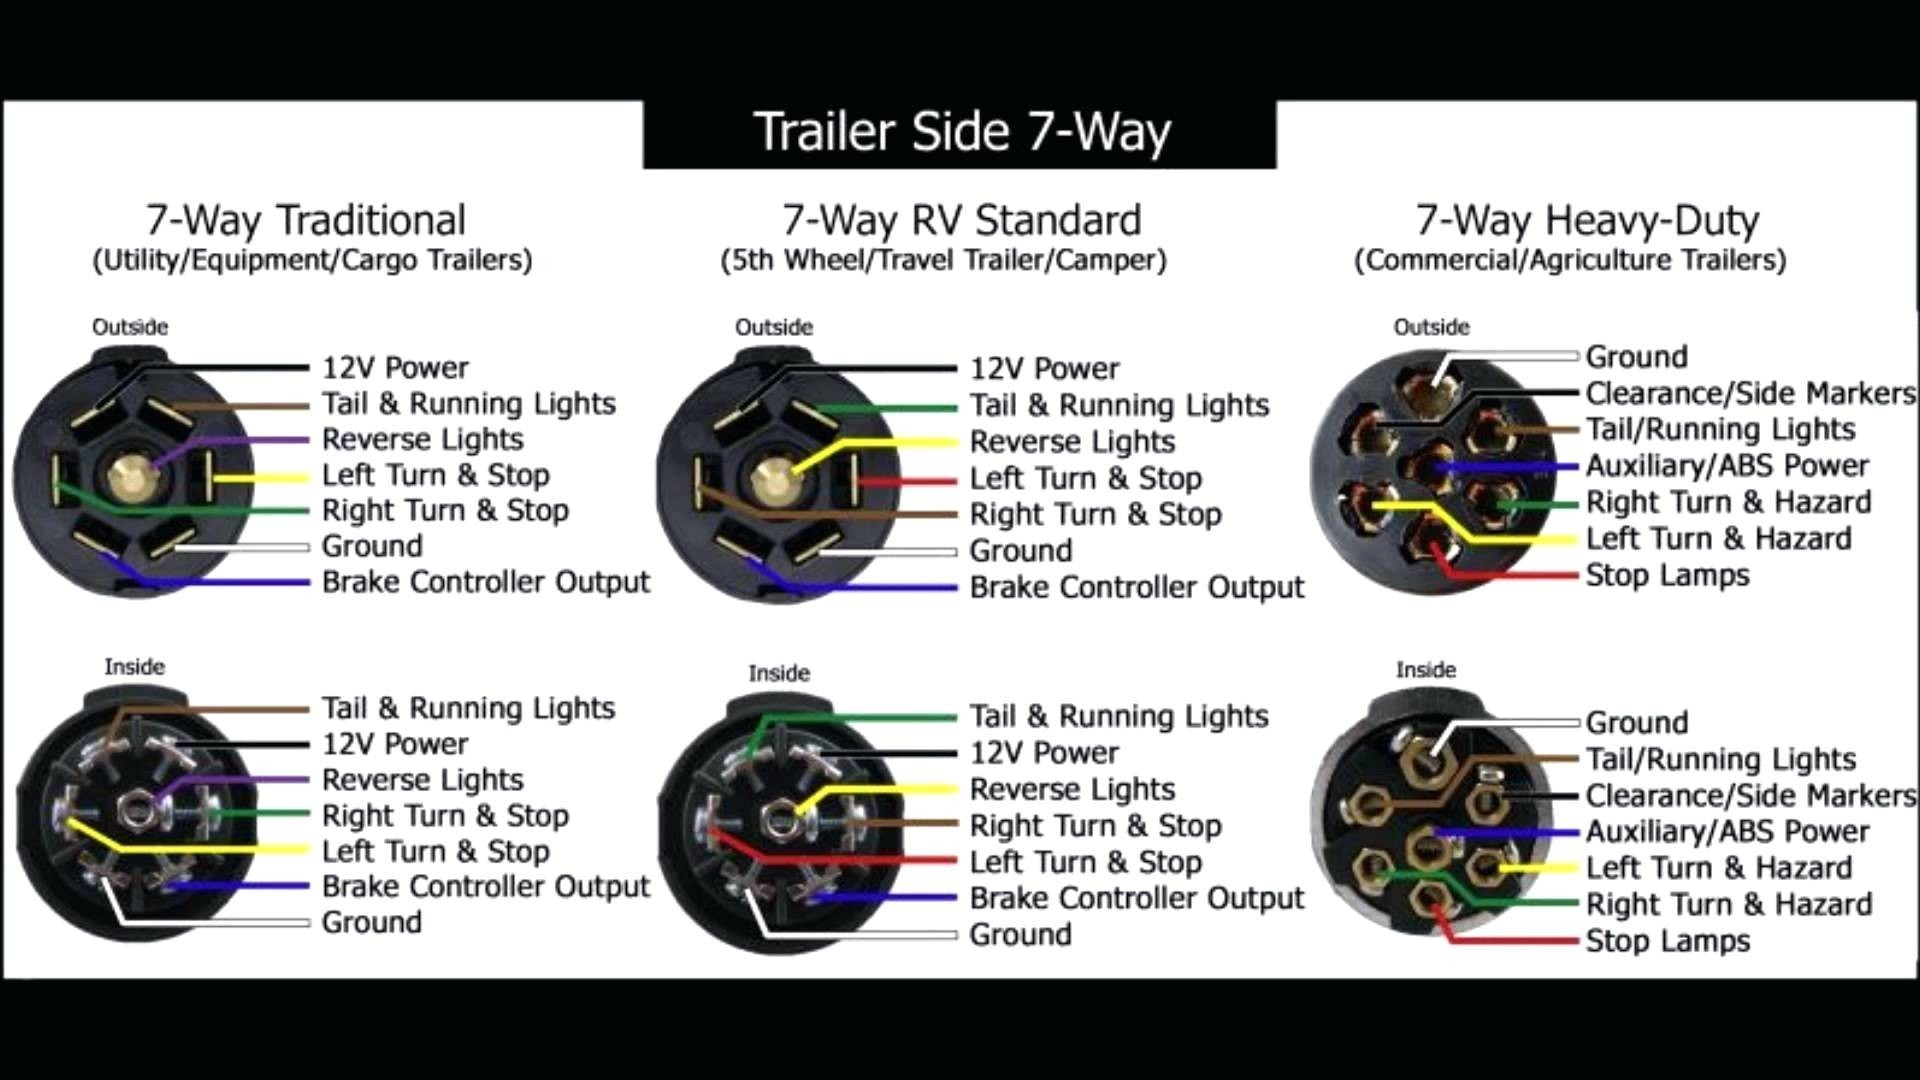 7 Pin Haulmark Trailer Wiring Diagram | Wiring Library - Trailer Wiring Diagram 6 Way To 7 Way